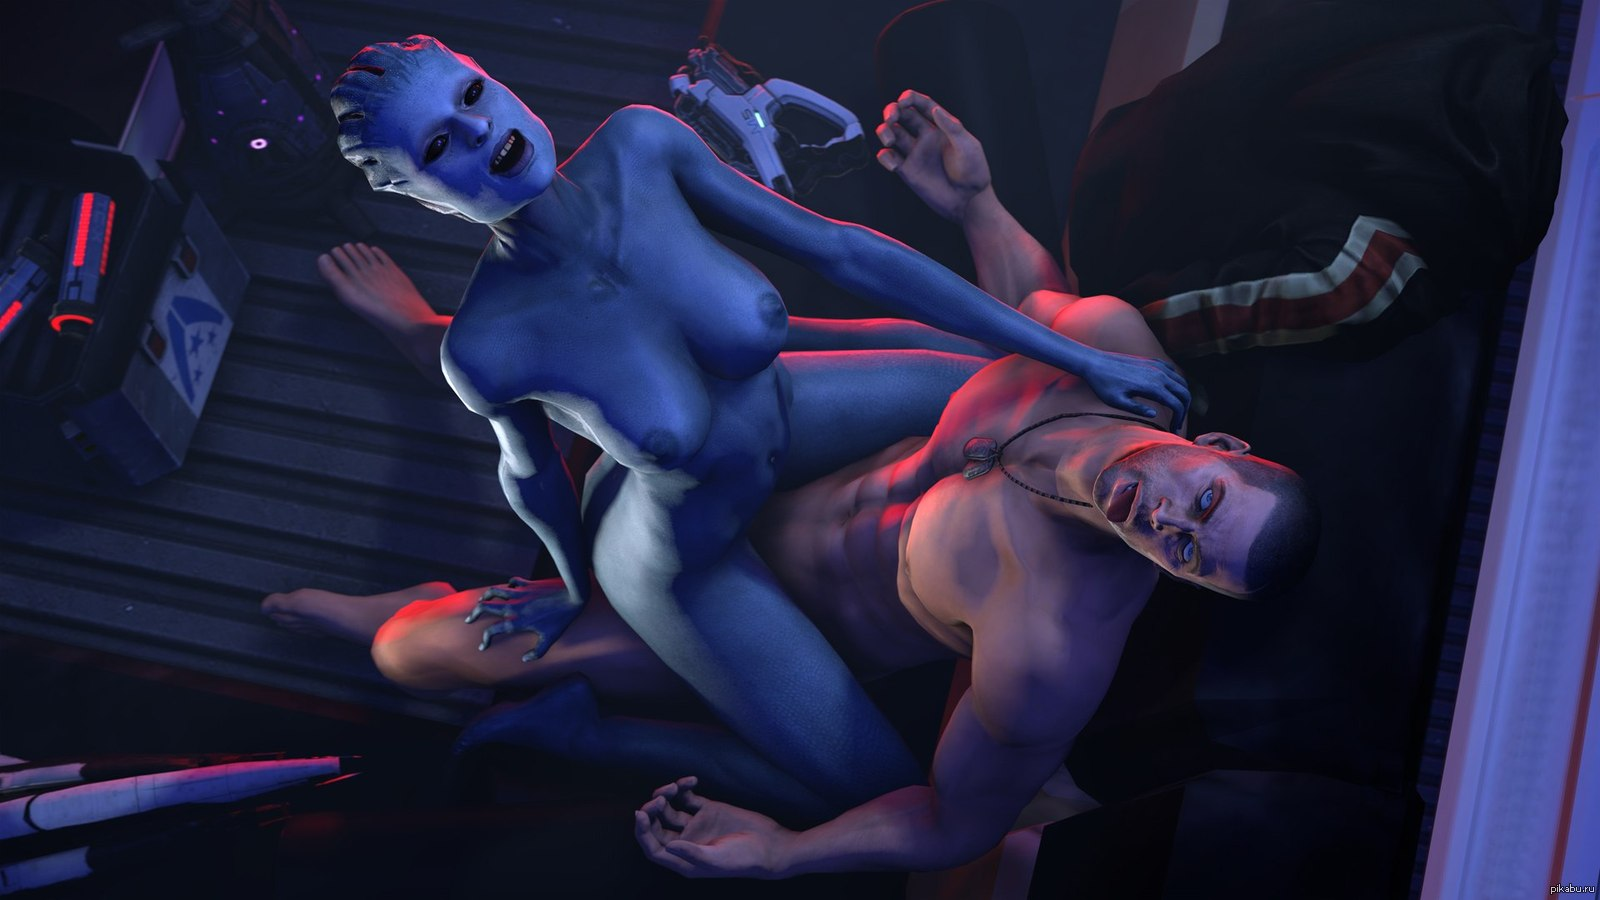 Nude photos of mass effect hentai pic